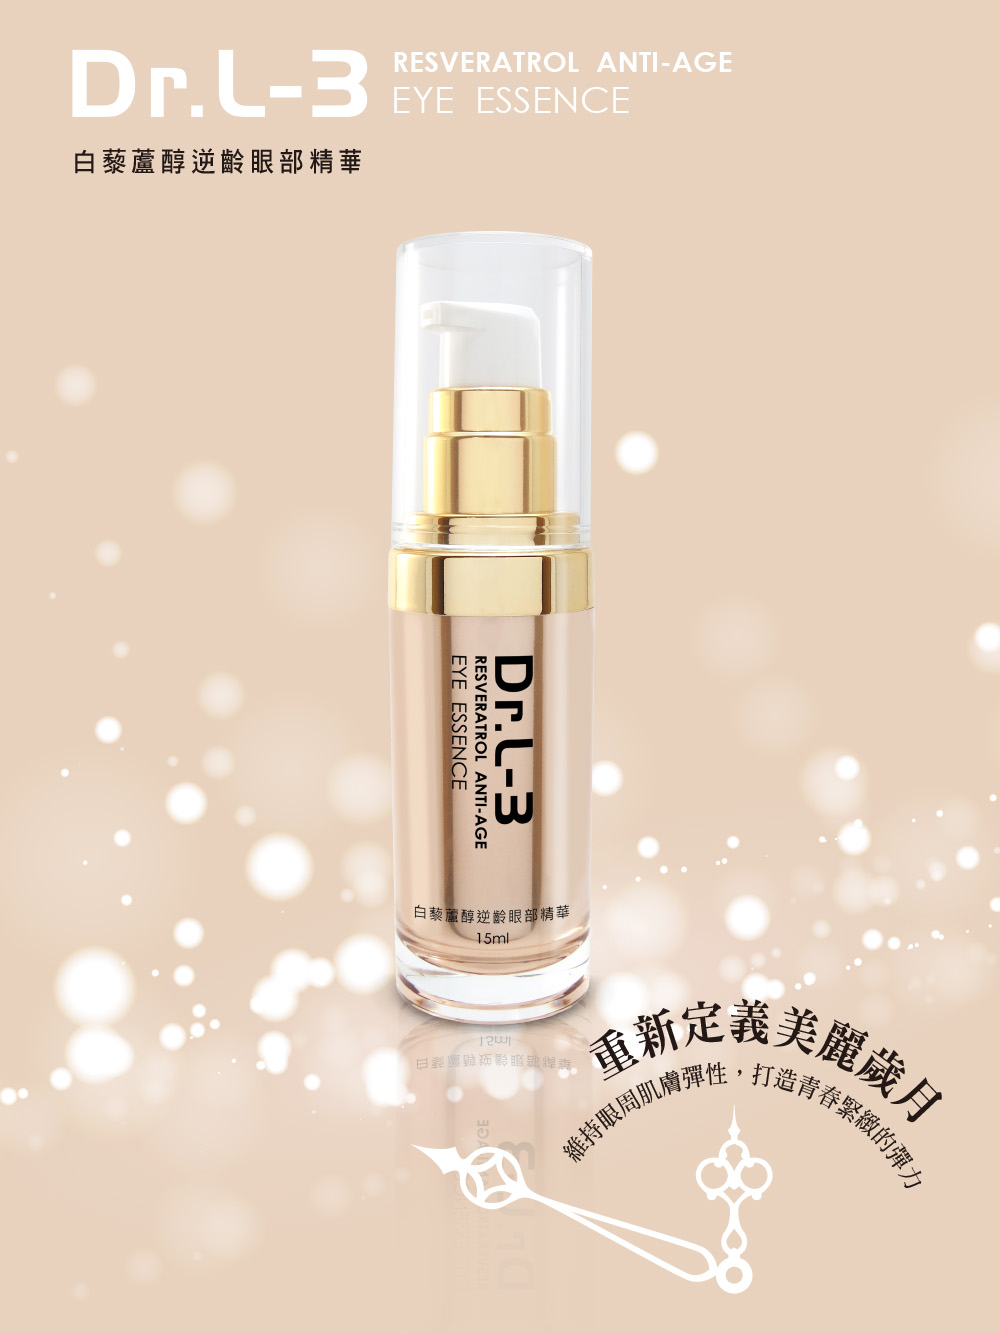 Dr.L-3 RESVERATROL ANTI-AGE EYE ESSENCE